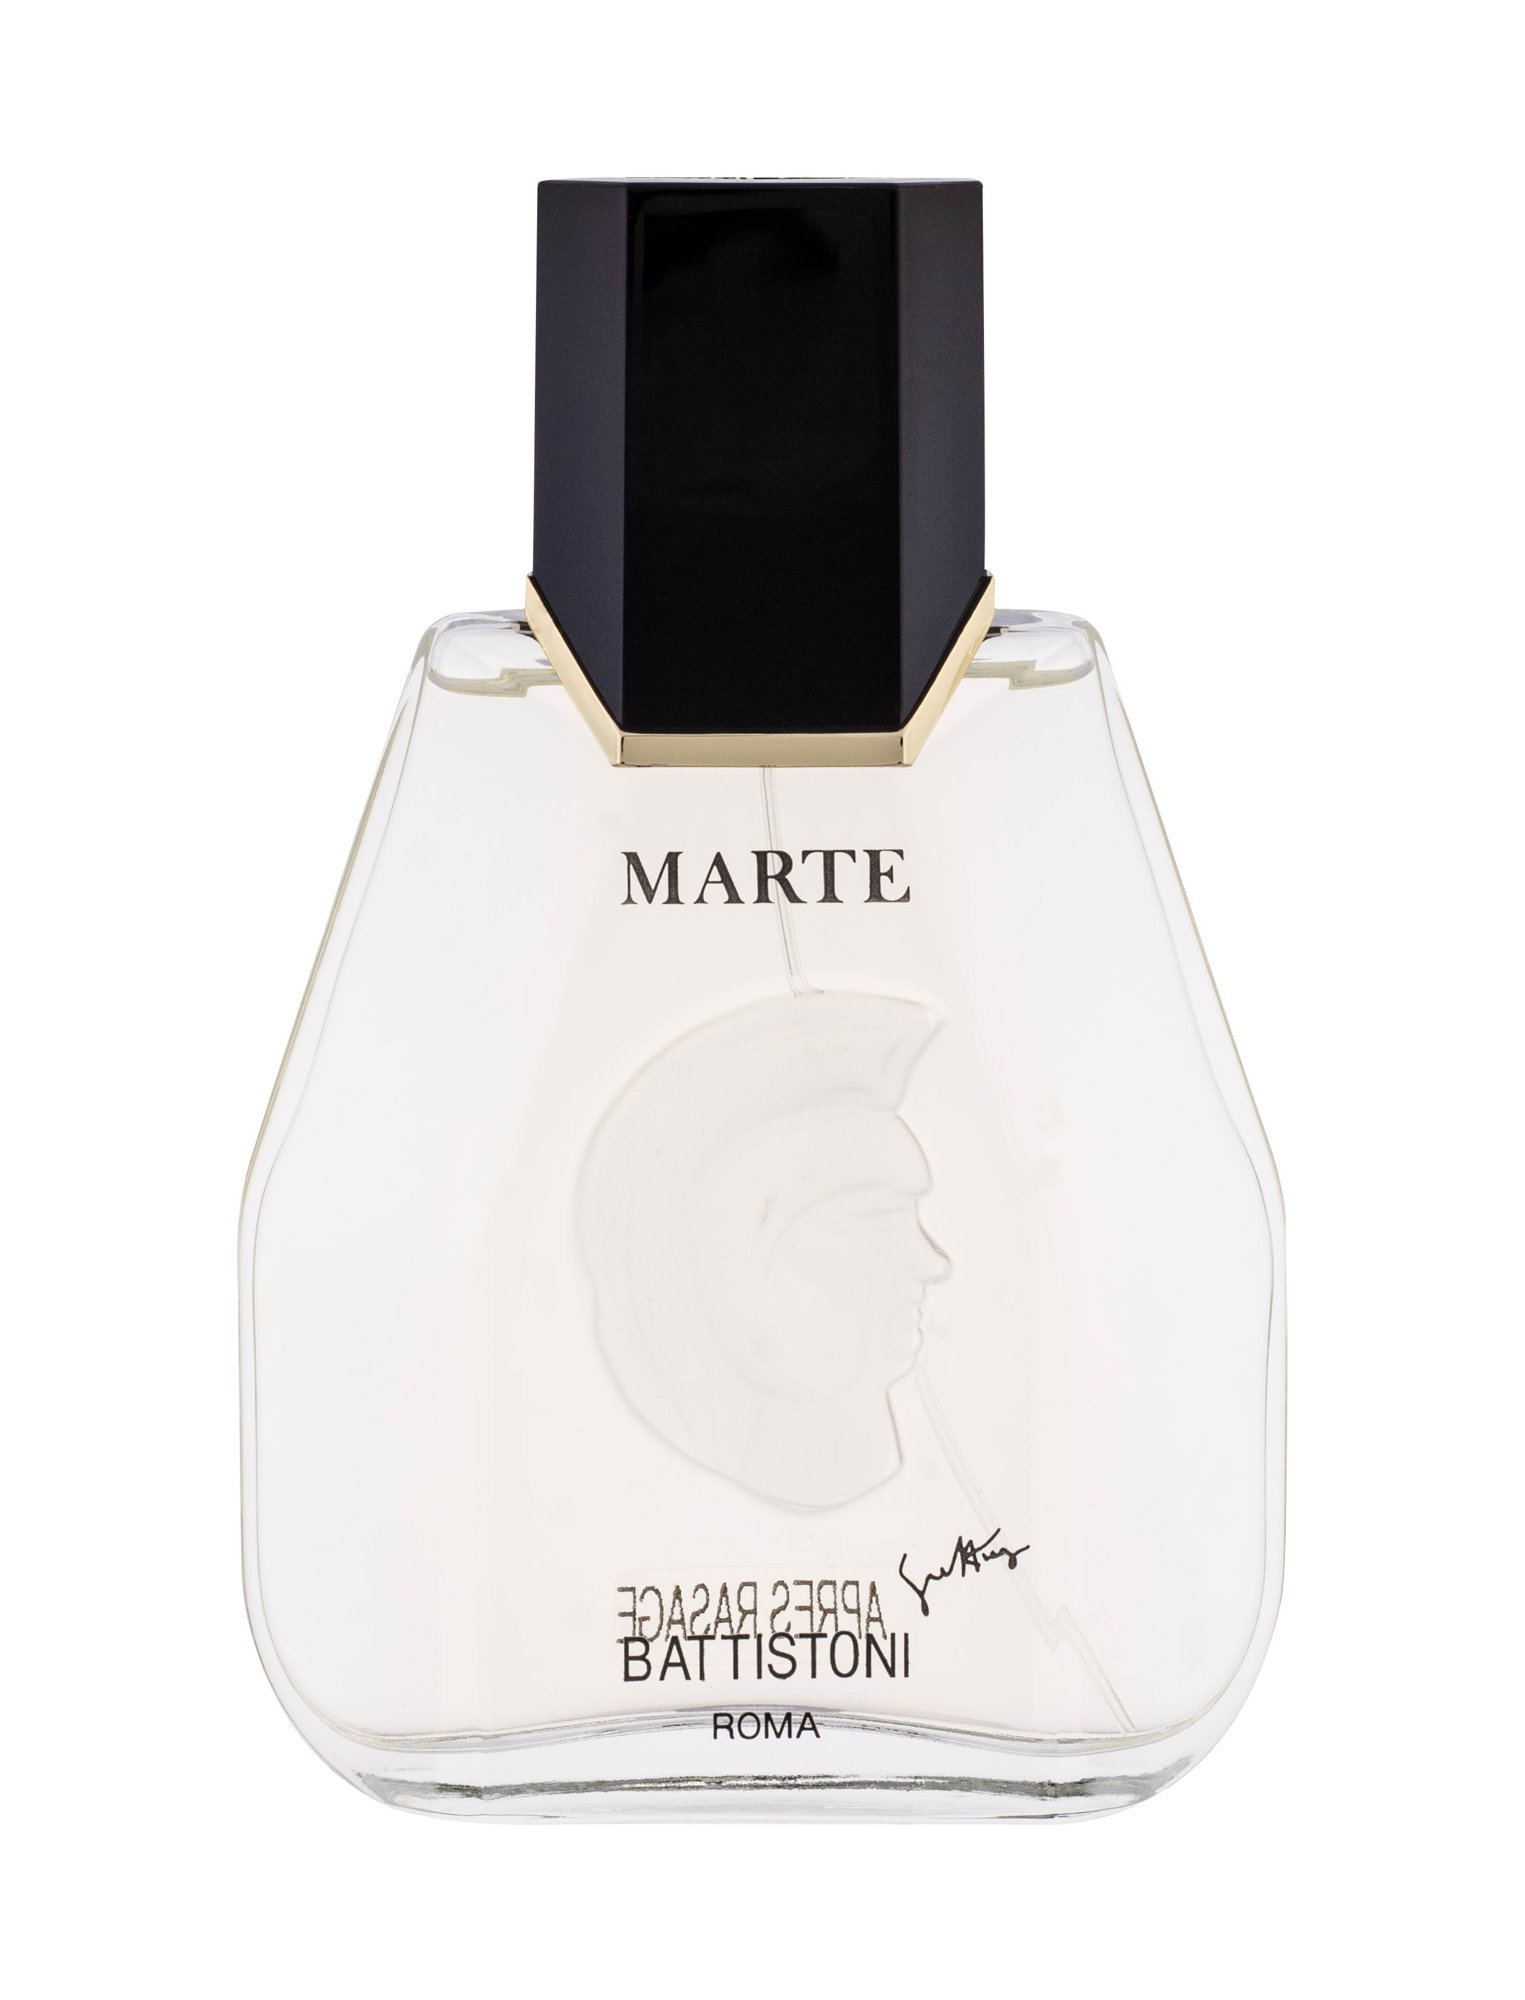 Battistoni Roma Marte Concentree Aftershave Water 125ml